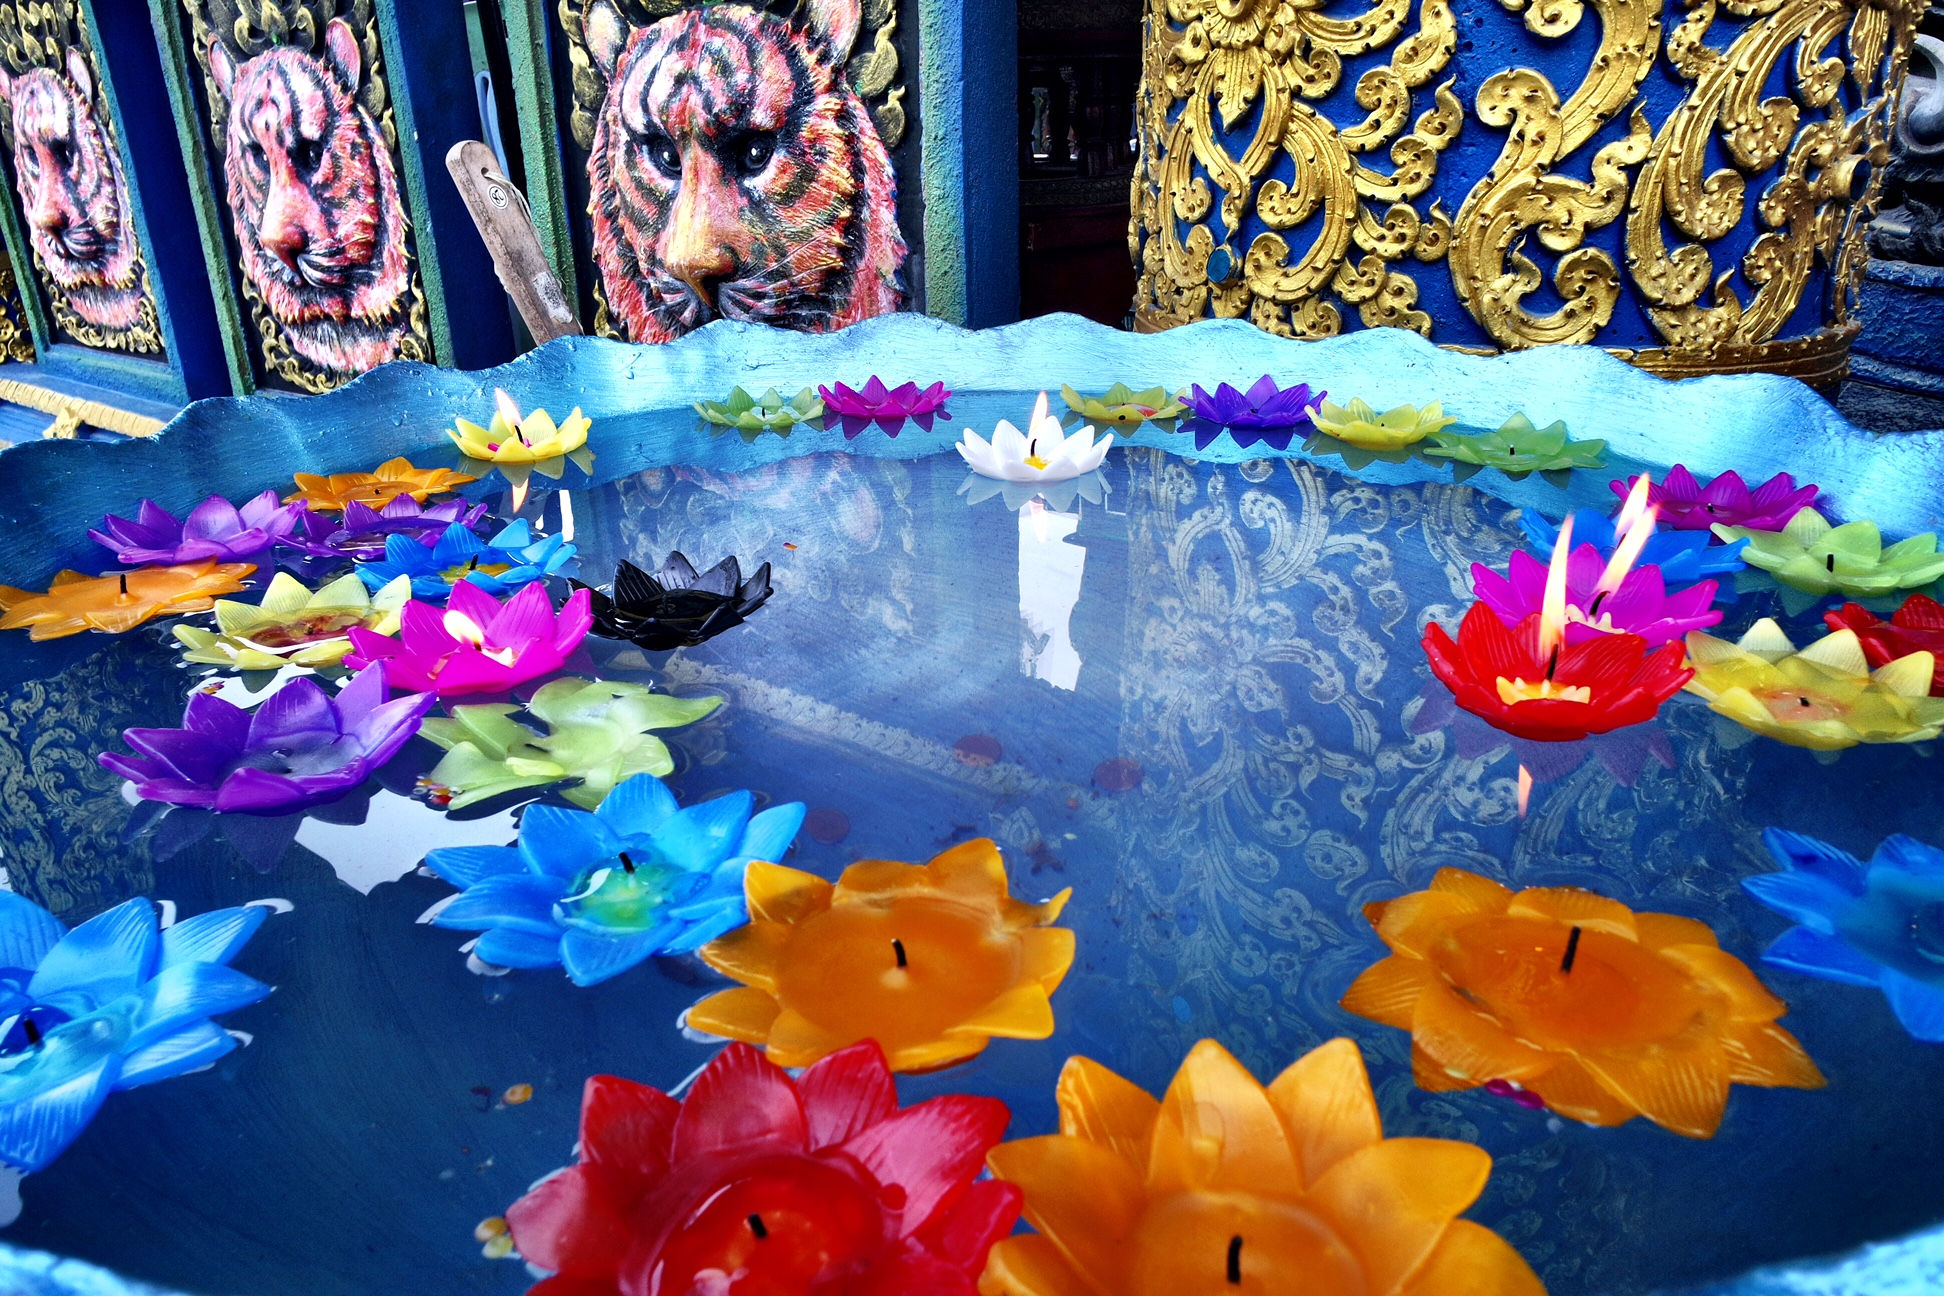 Make a donation and light a floating lotus candle